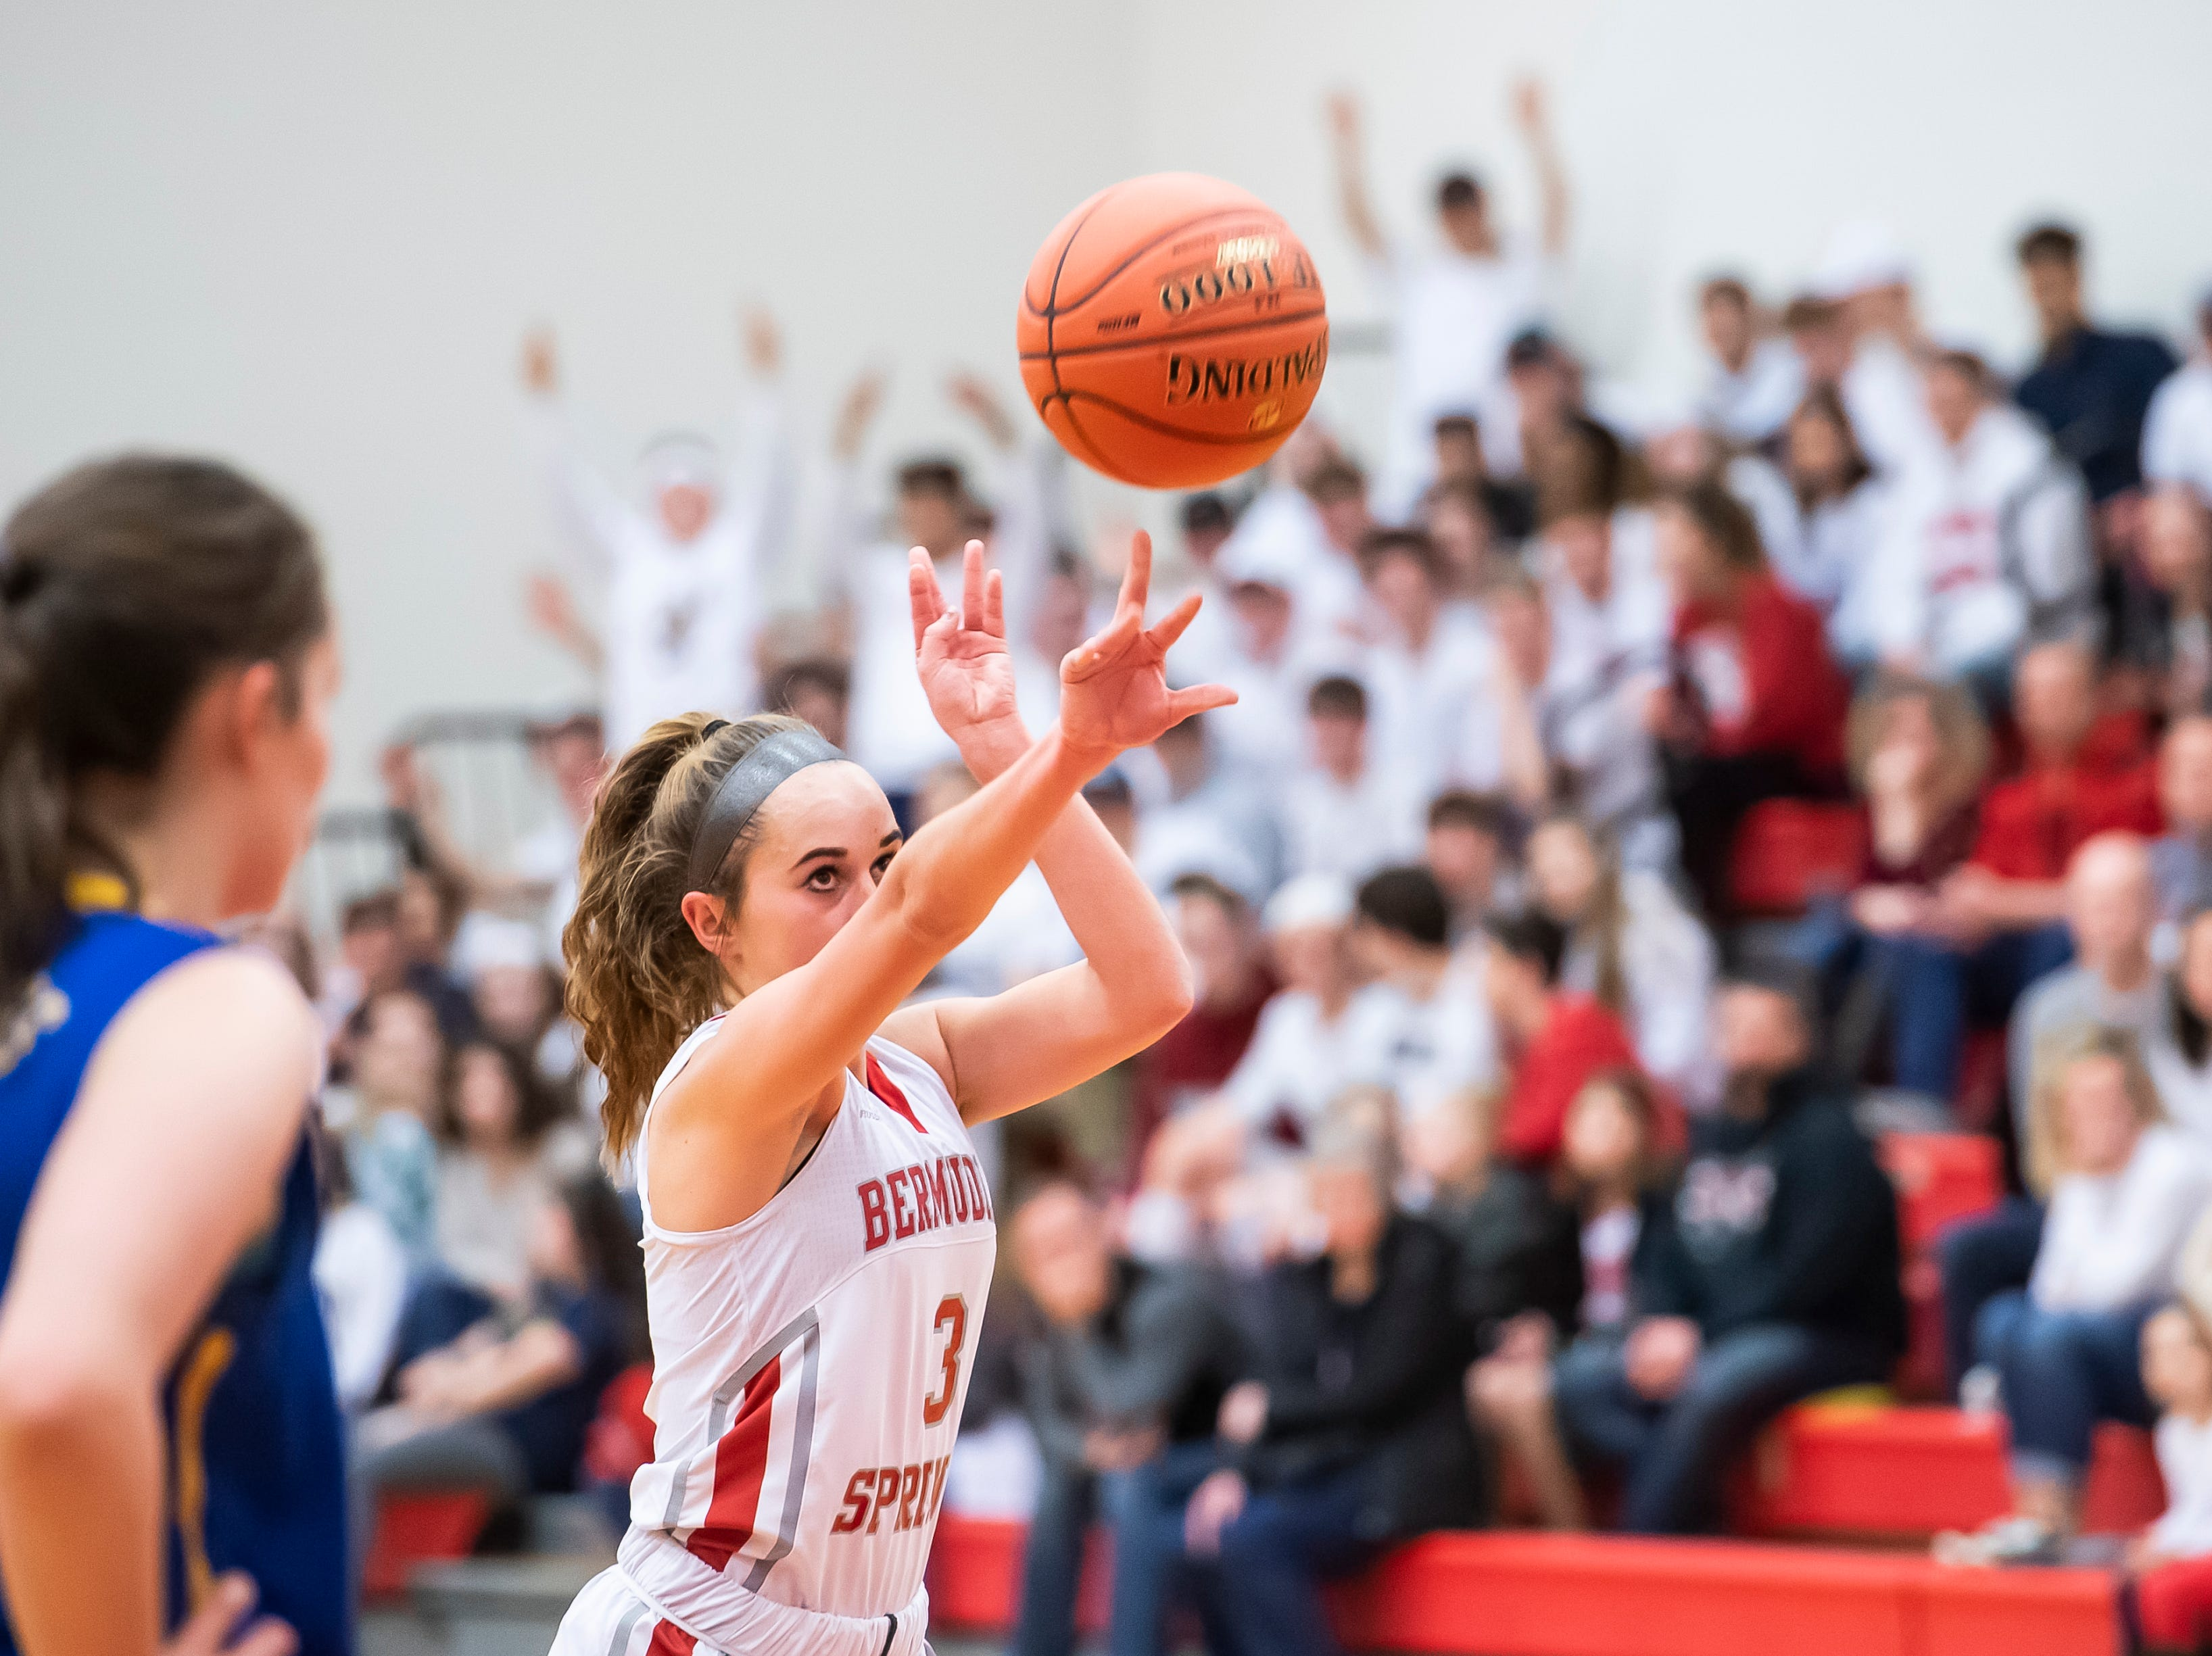 Bermudian Springs' Skyler West shoots and makes a free throw during play against Northern Lebanon in the first round of the District III 4-A playoffs Tuesday, February 19, 2019. The Eagles won 58-52.